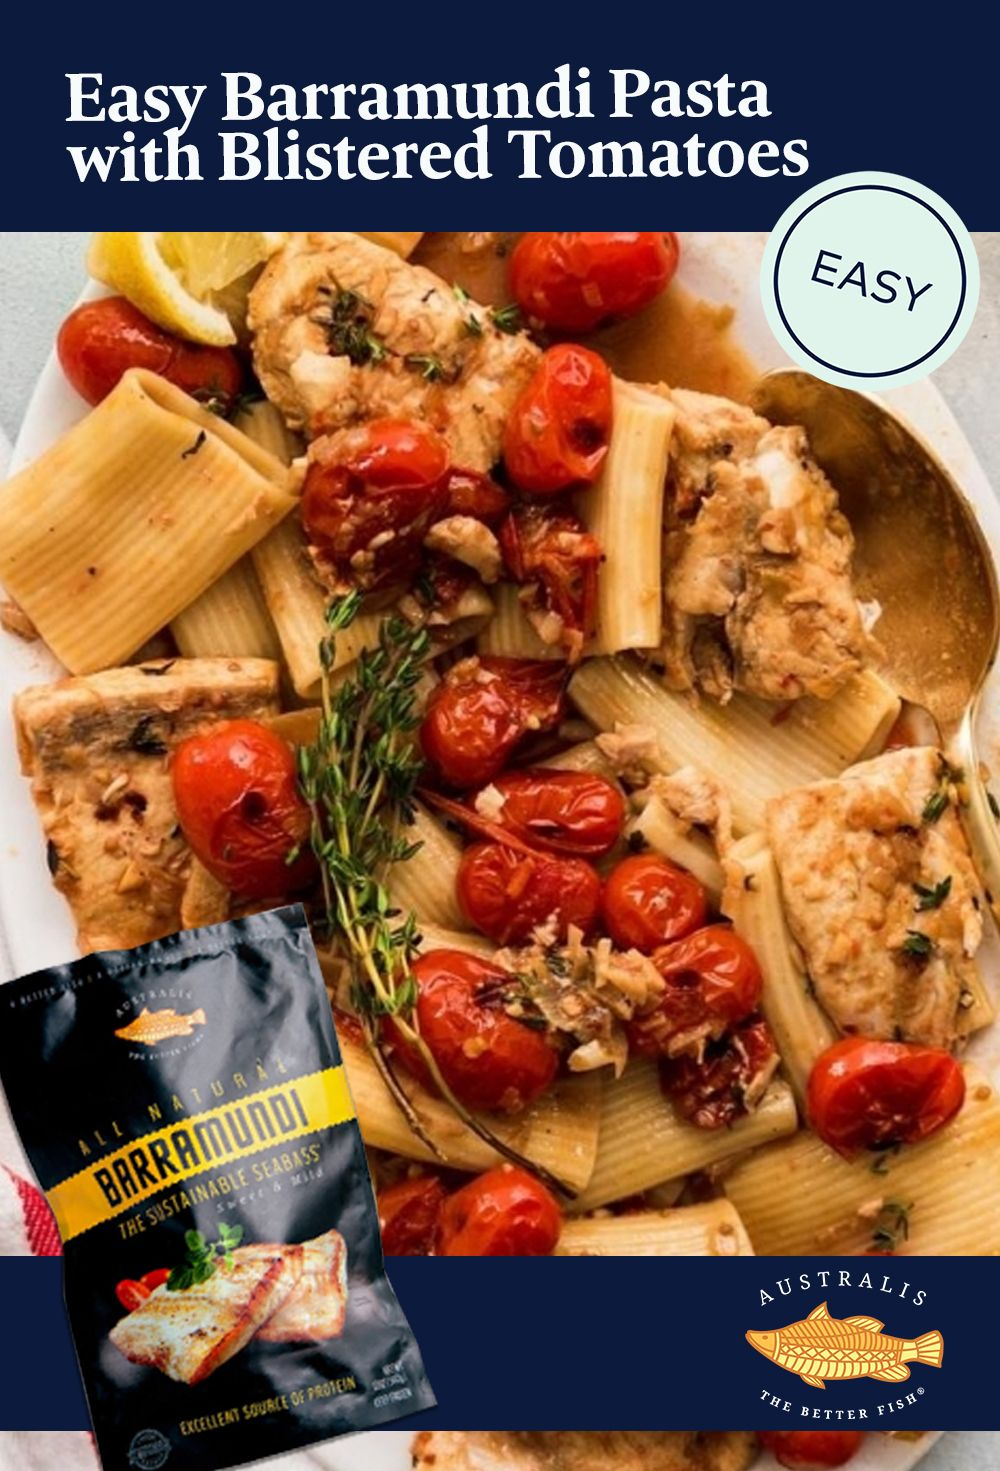 Easy Fish Pasta with Blistered Tomatoes | Australis Barramundi